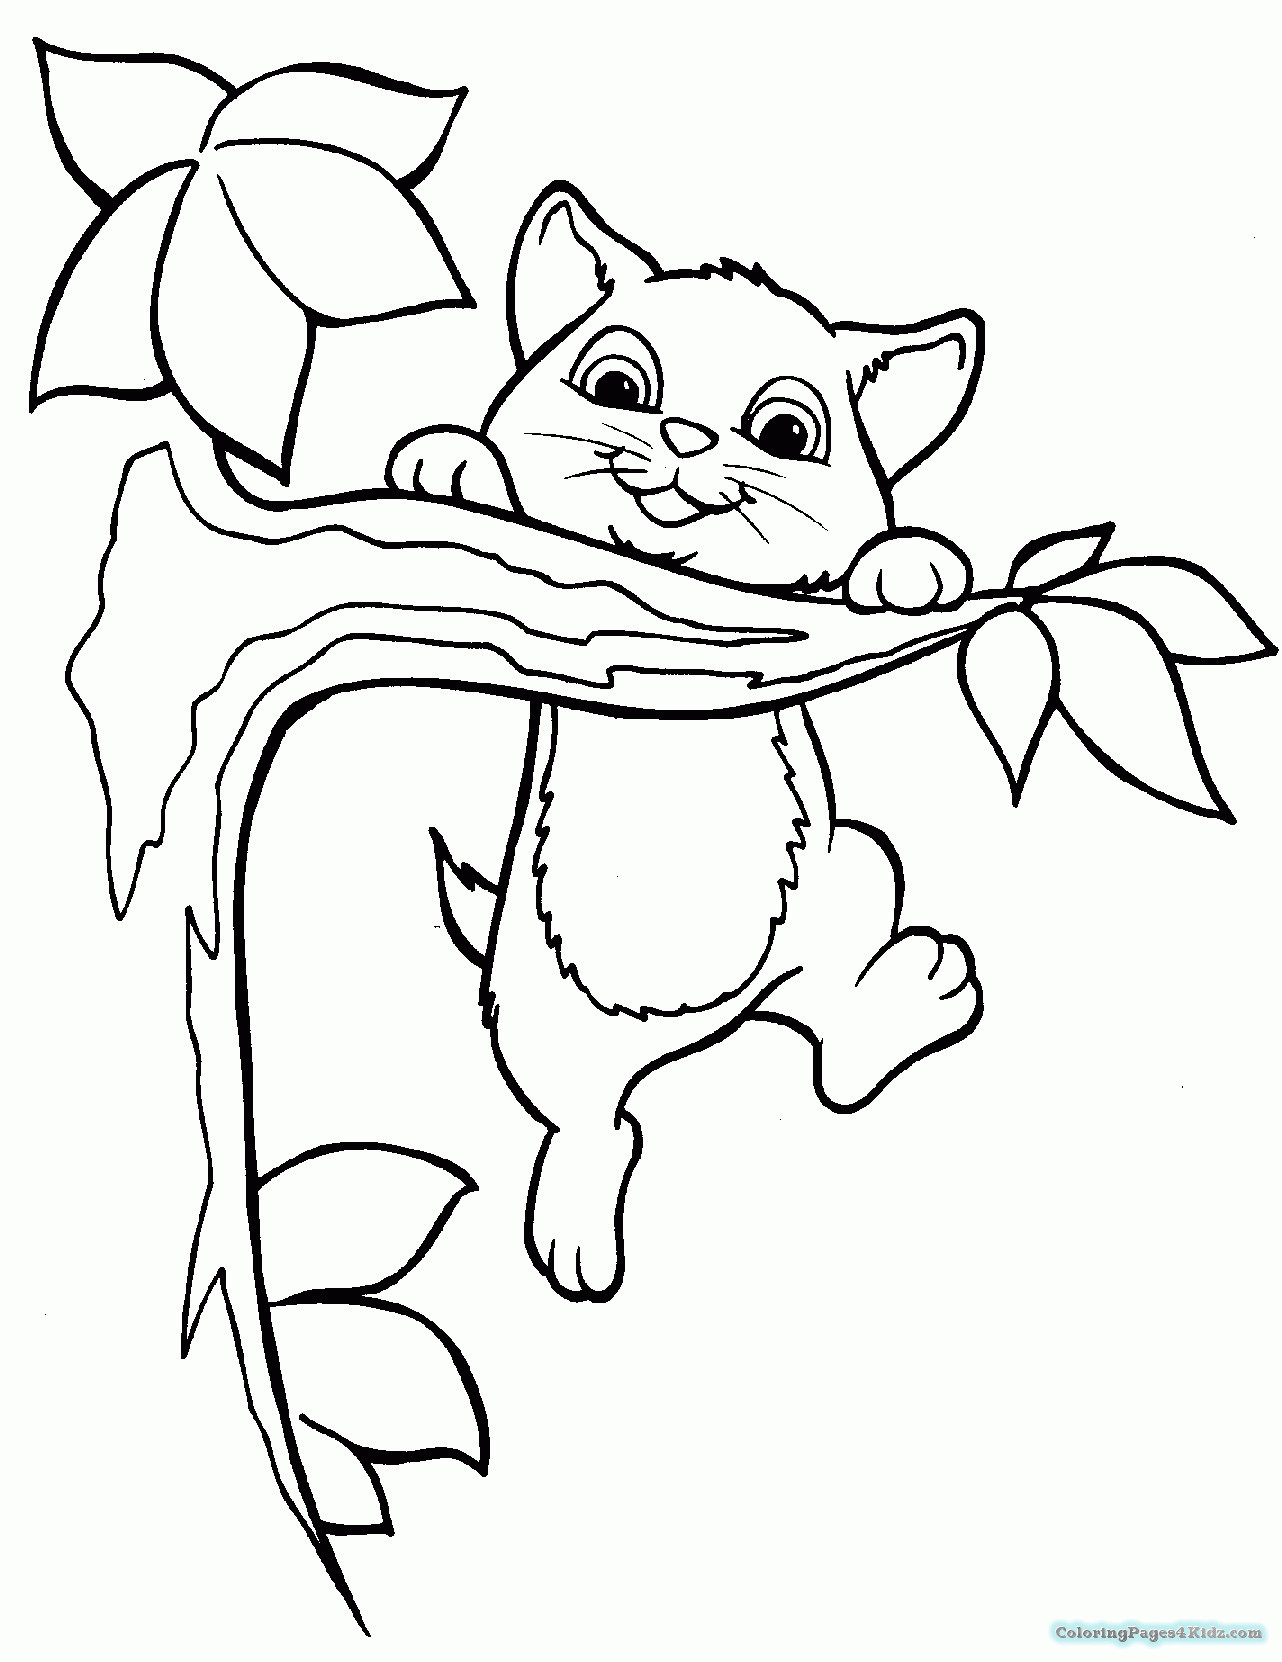 Christmas Coloring Pages Kitten With To Print Real Kittens Fresh